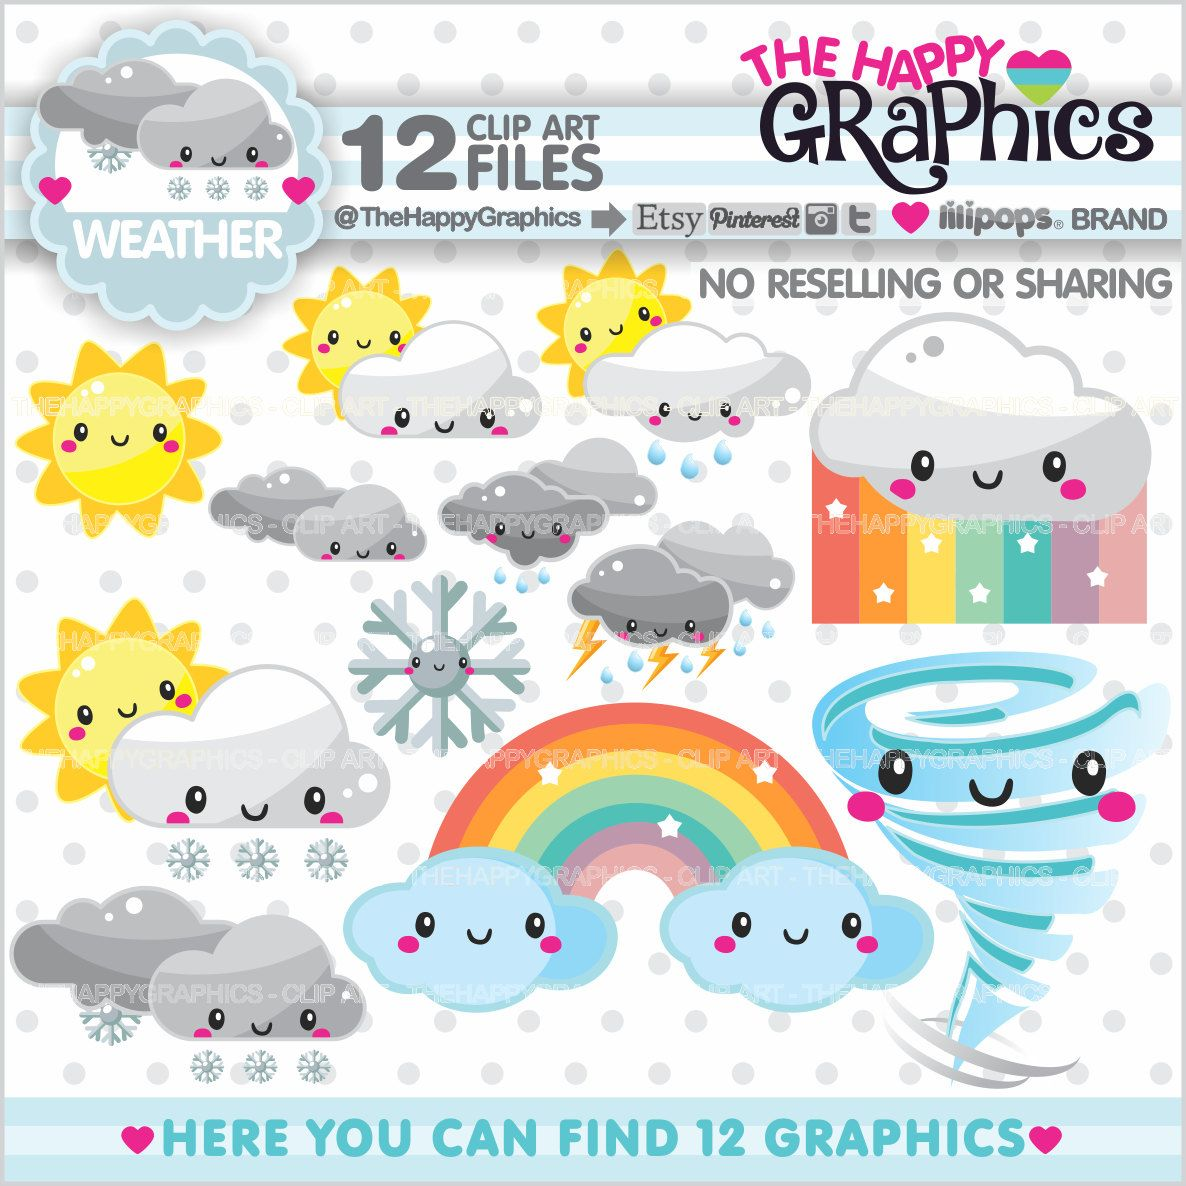 weather clipart 80 off weather graphics commercial use forecast clipart planner accessories weather icons cloud clipart sun kawaii [ 1186 x 1186 Pixel ]